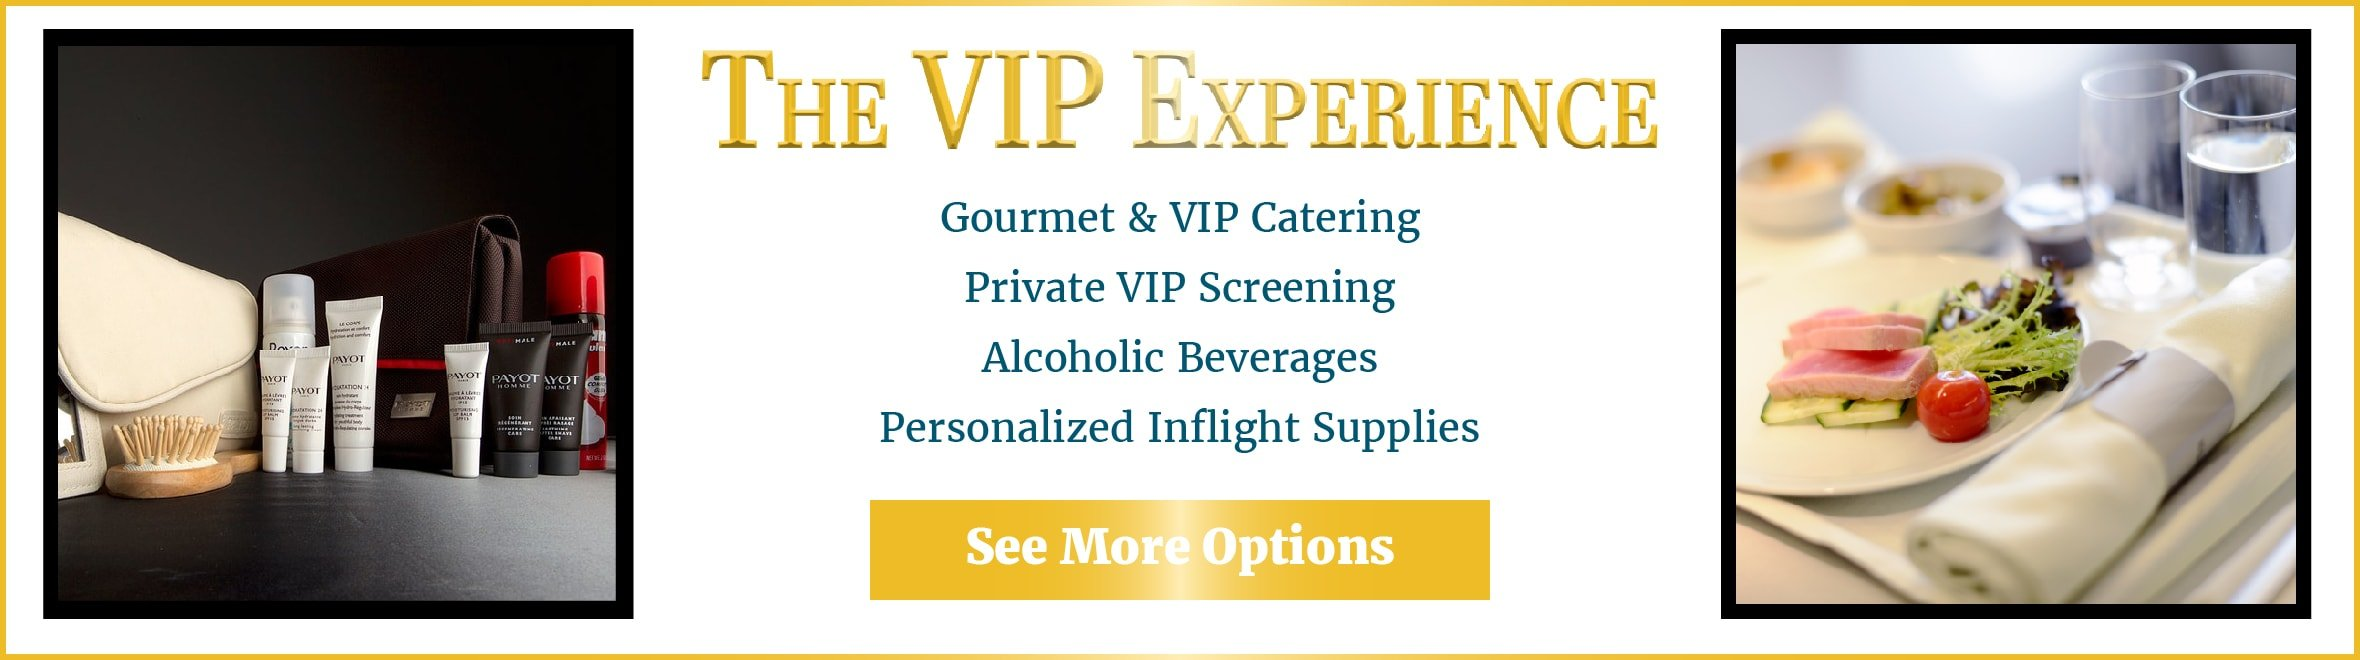 The VIP experience details